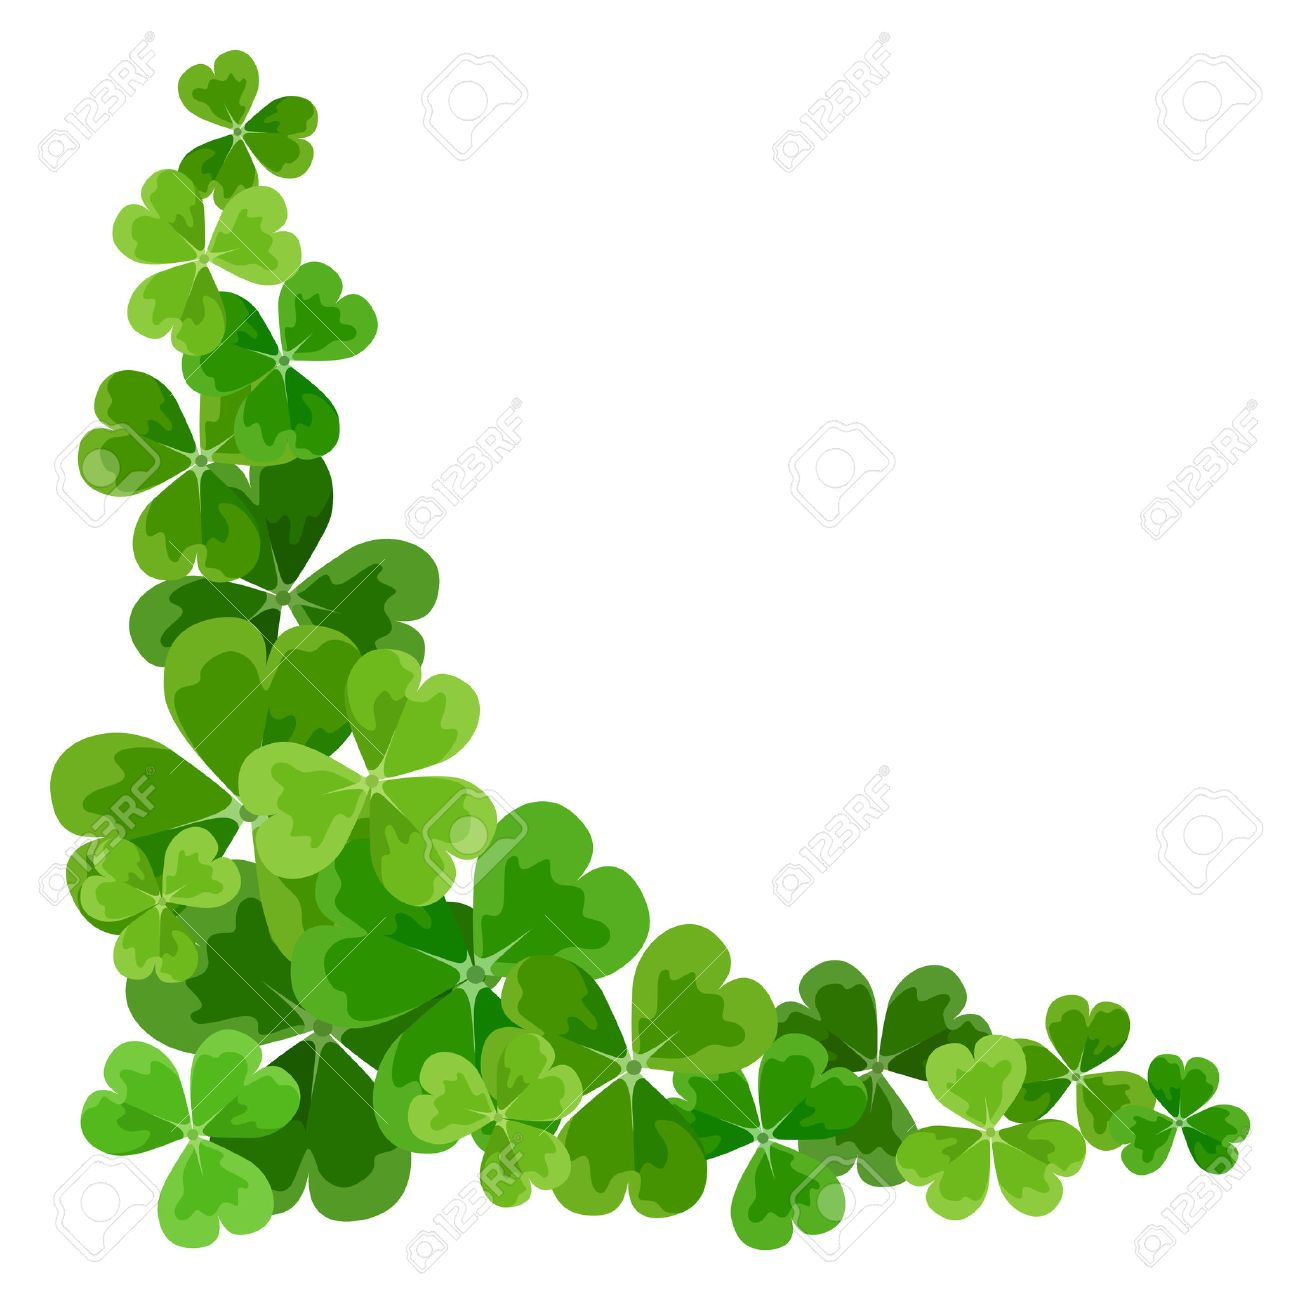 st patrick s corner border with shamrock vector illustration